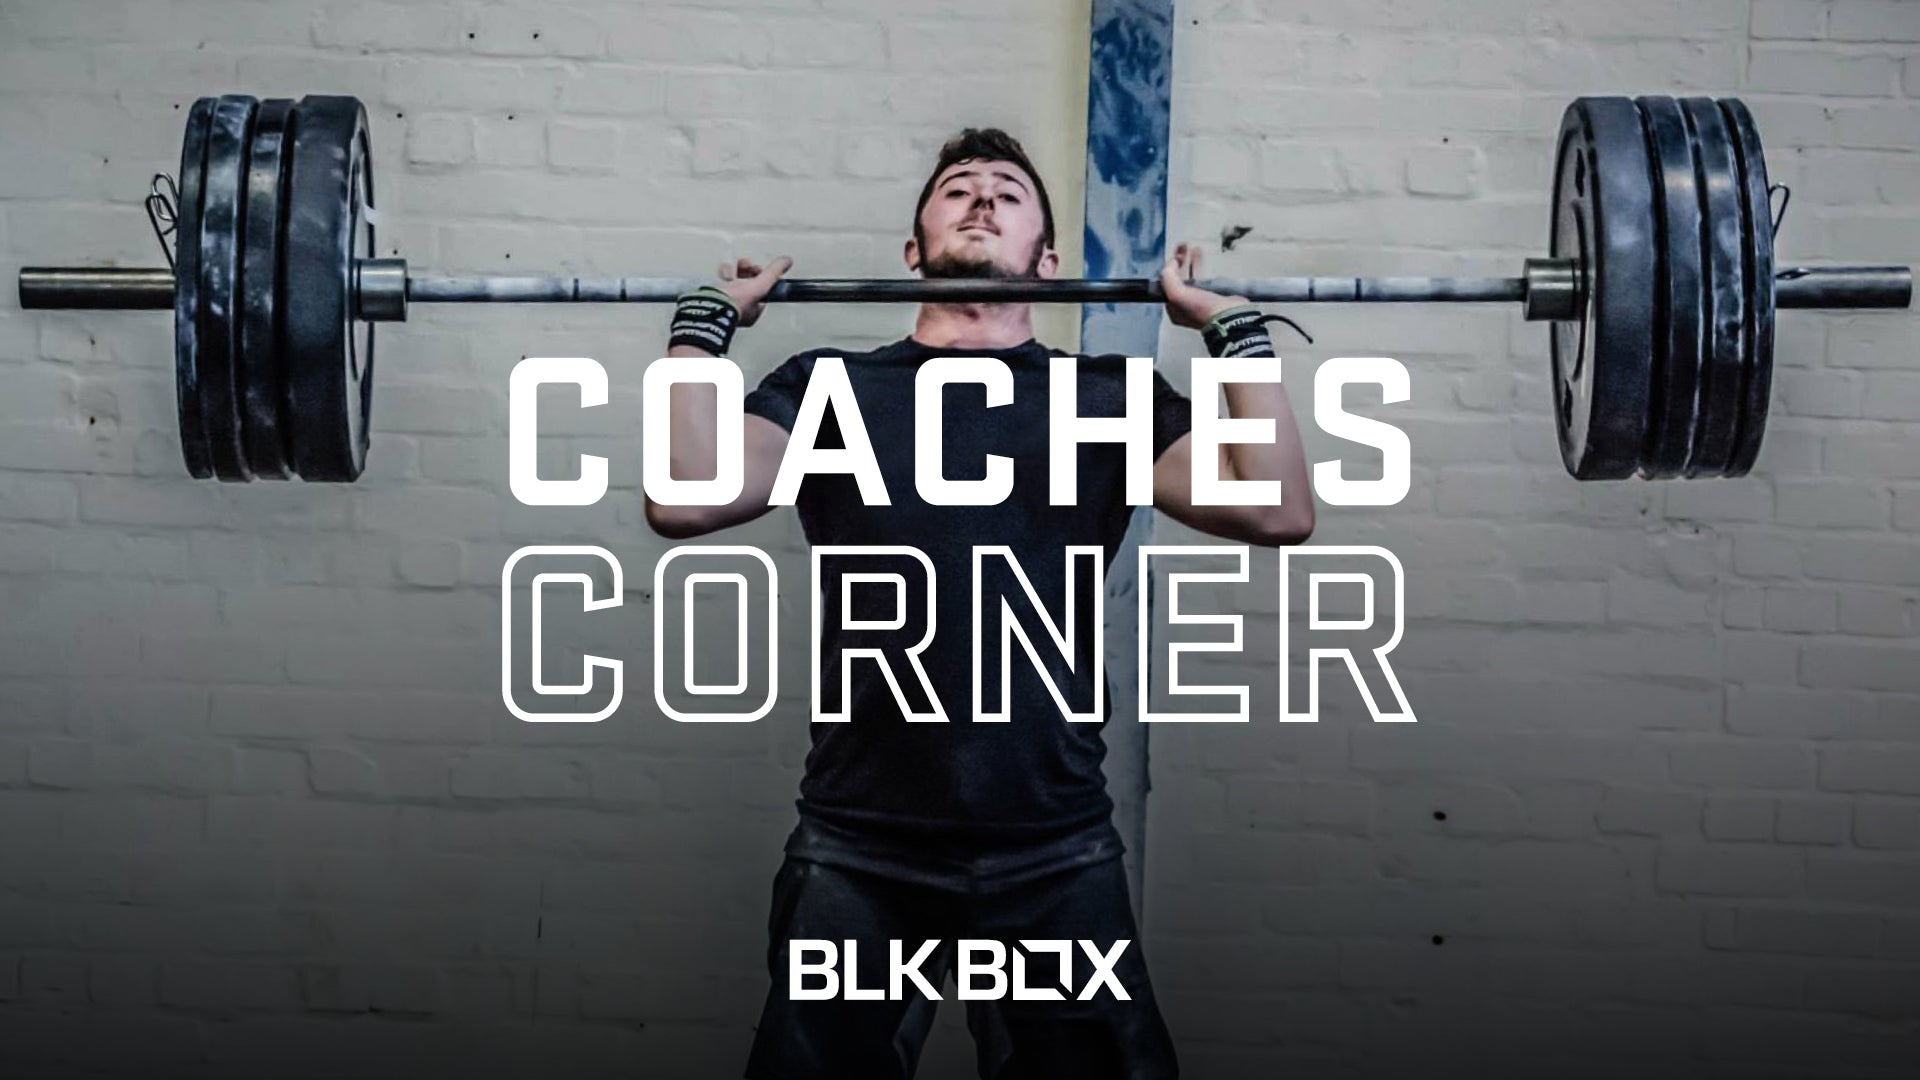 Coaches Corner - Jake Baxter